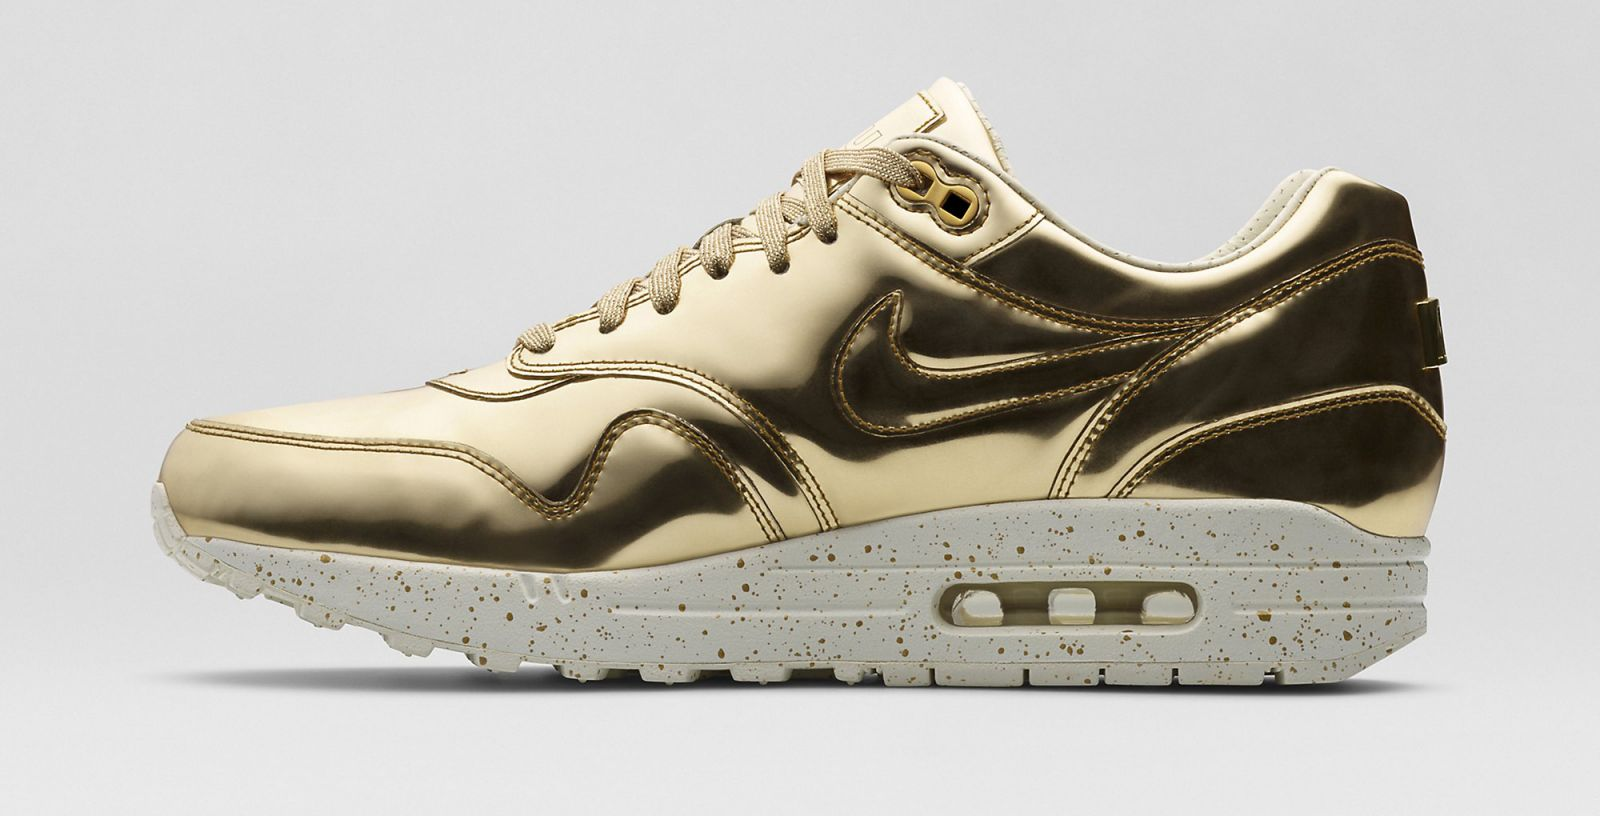 Nike Air Max 1 'Liquid Metal Pack' Releasing for Men